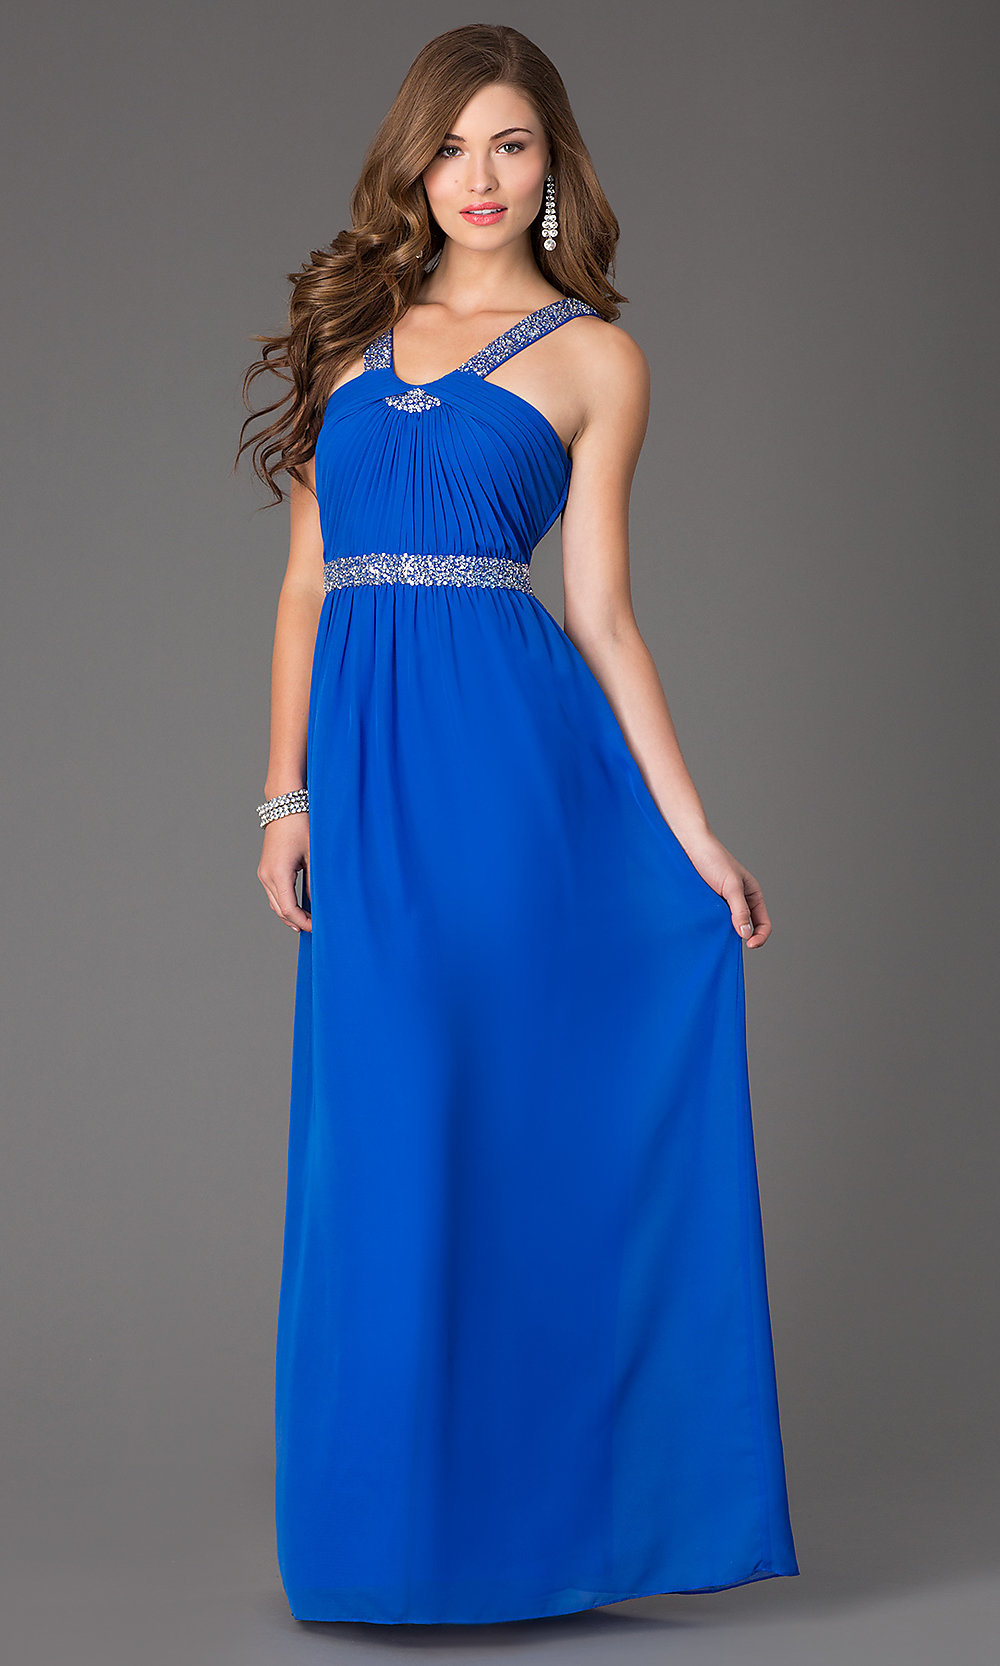 Electric Blue Sleeveless Long Ball Gown